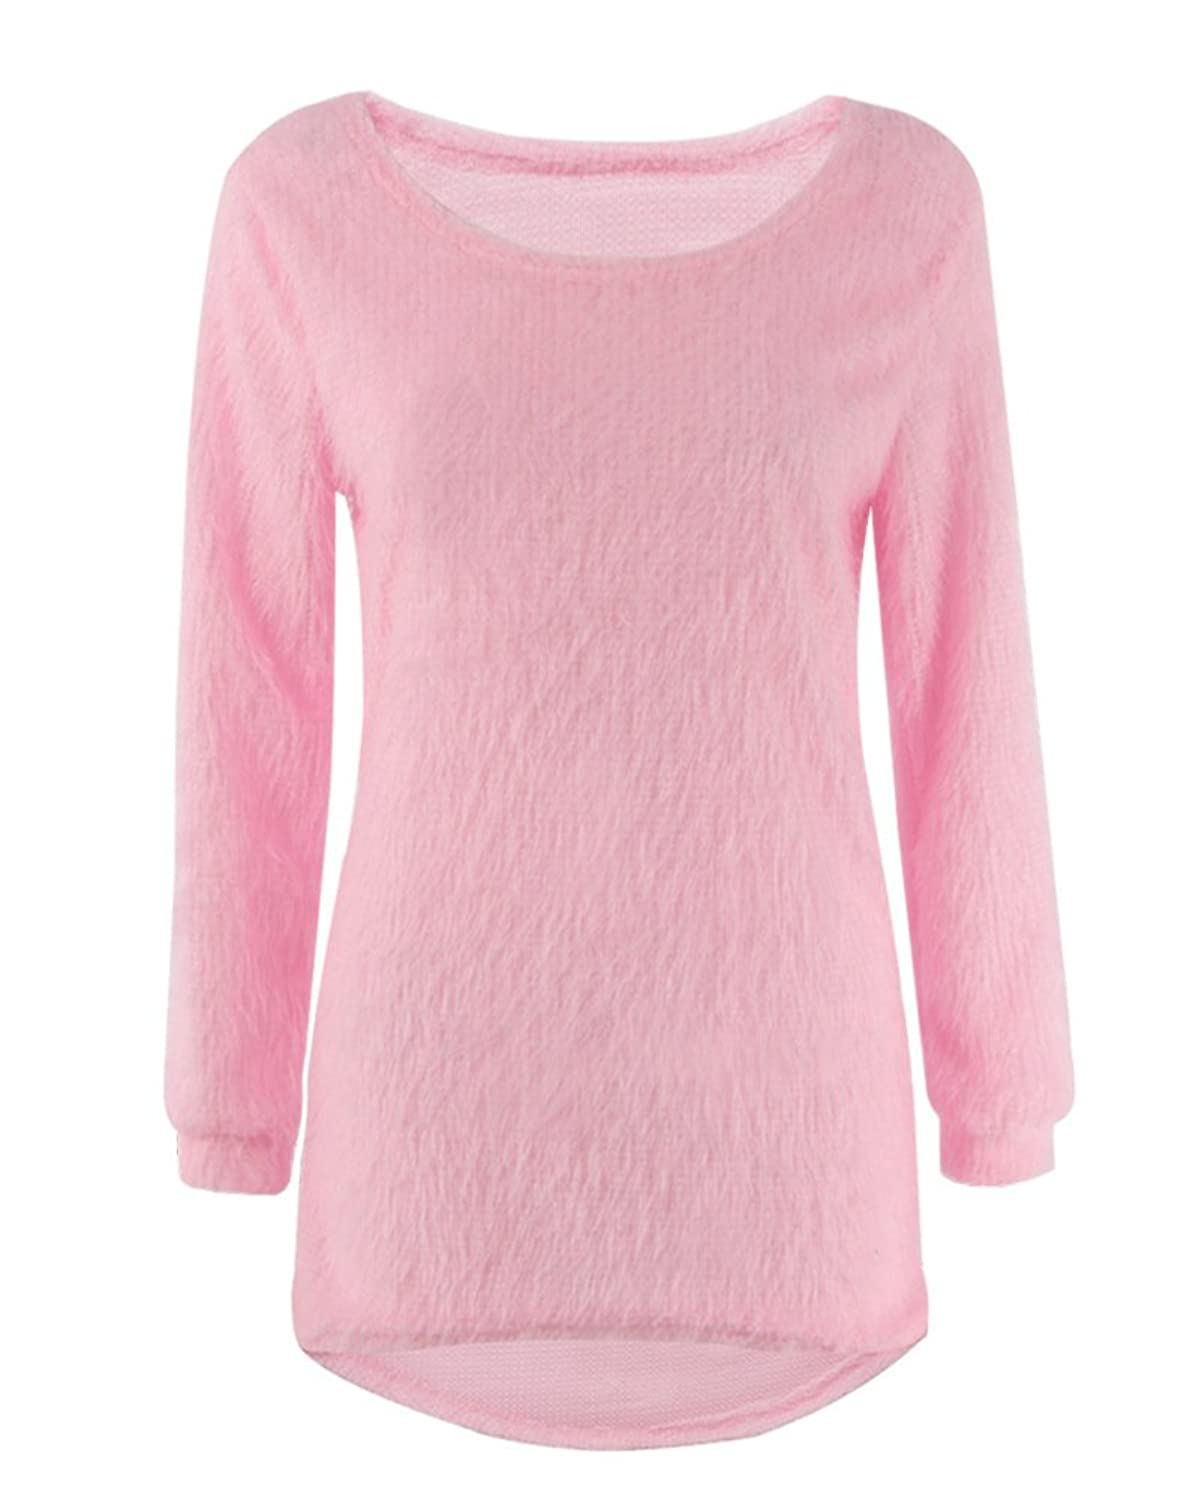 cheap Mujer Larga Manga Suelto Suéter Pull-over Casual Parte Superior Blusa  Pink L 3bc509d89c3ea